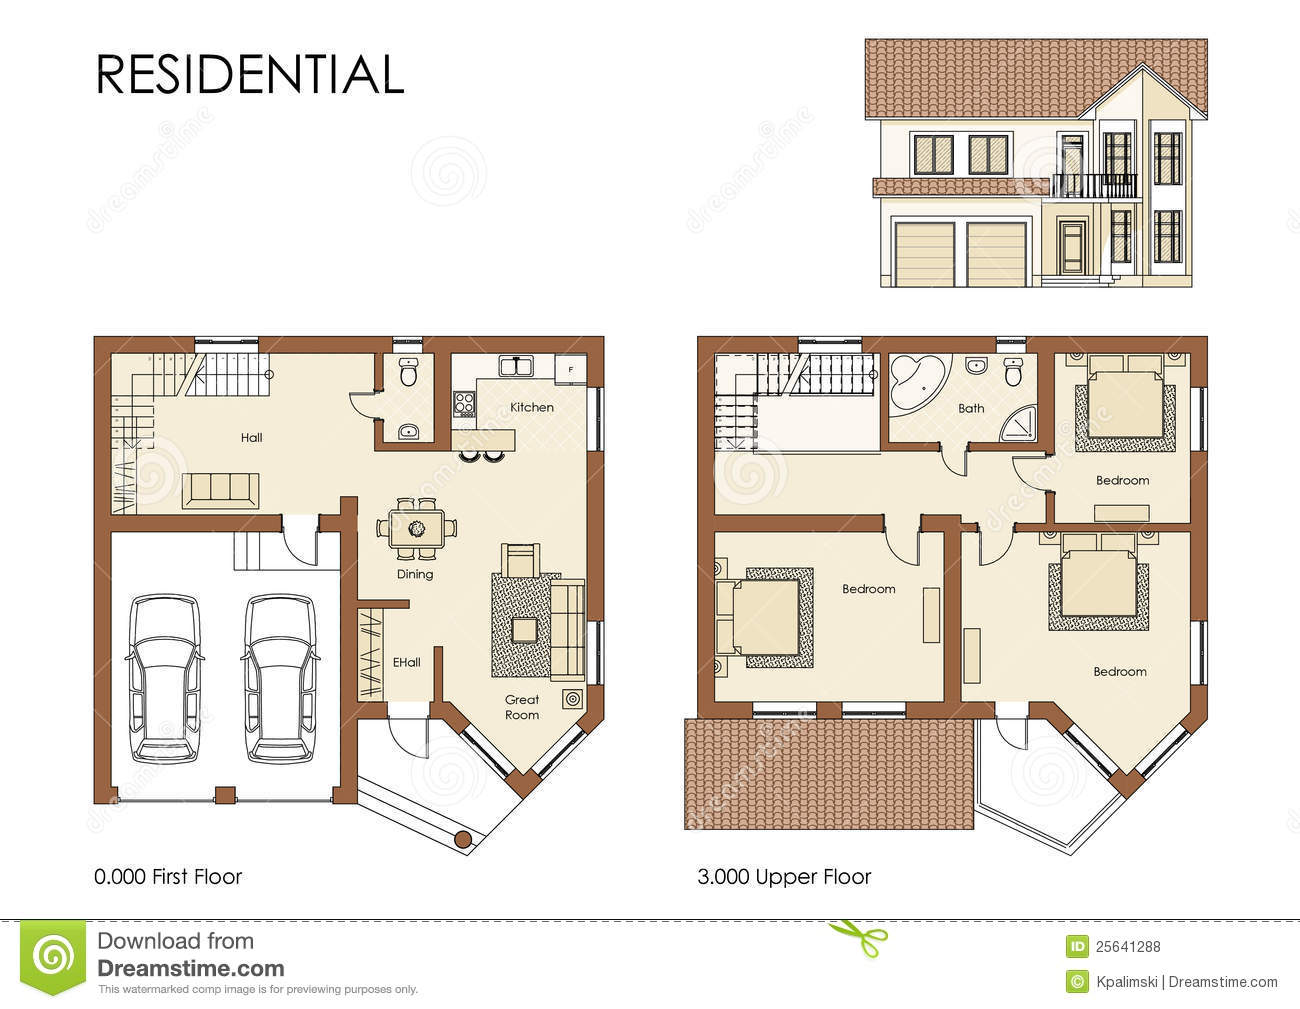 Residential house plan royalty free stock photos image Residential home floor plans